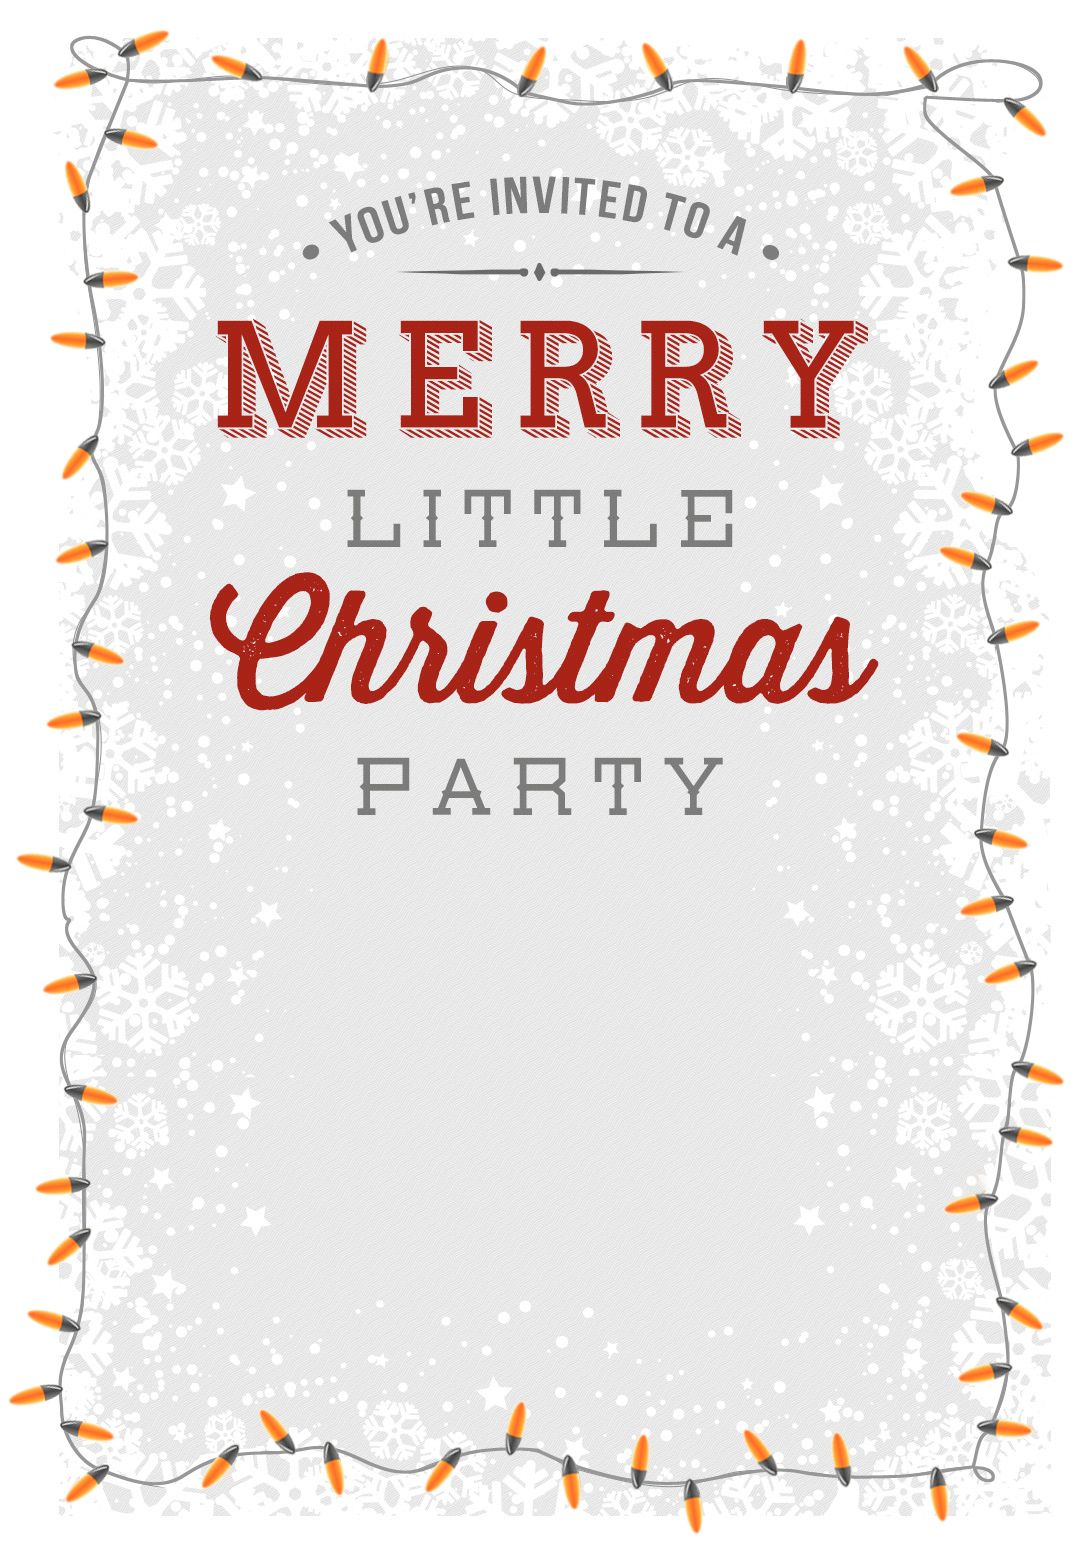 A Merry Little Party